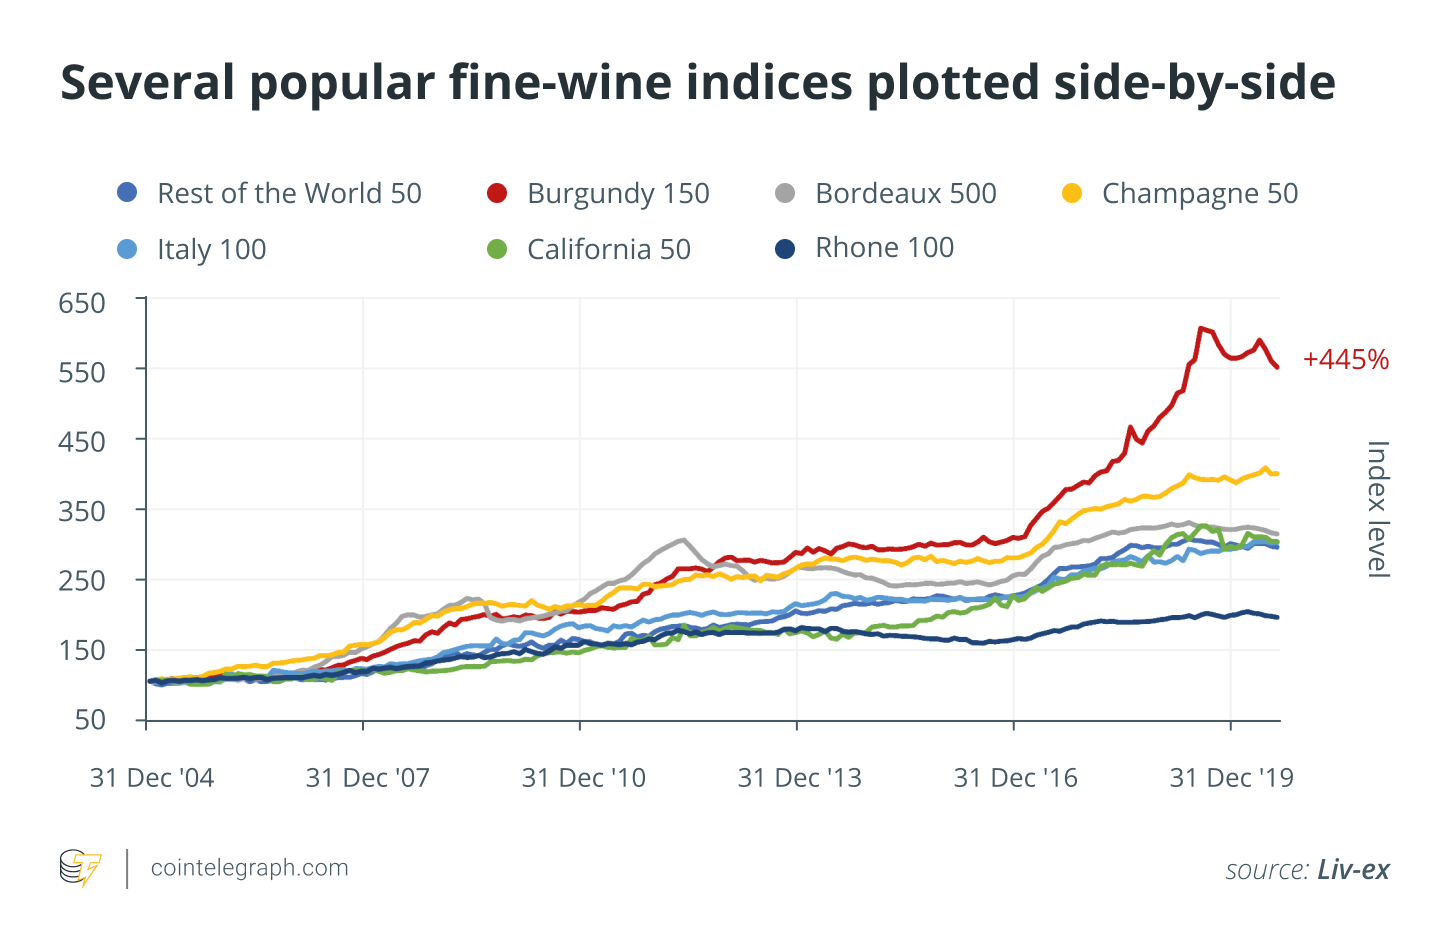 Several popular fine-wine indices plotted side-by-side